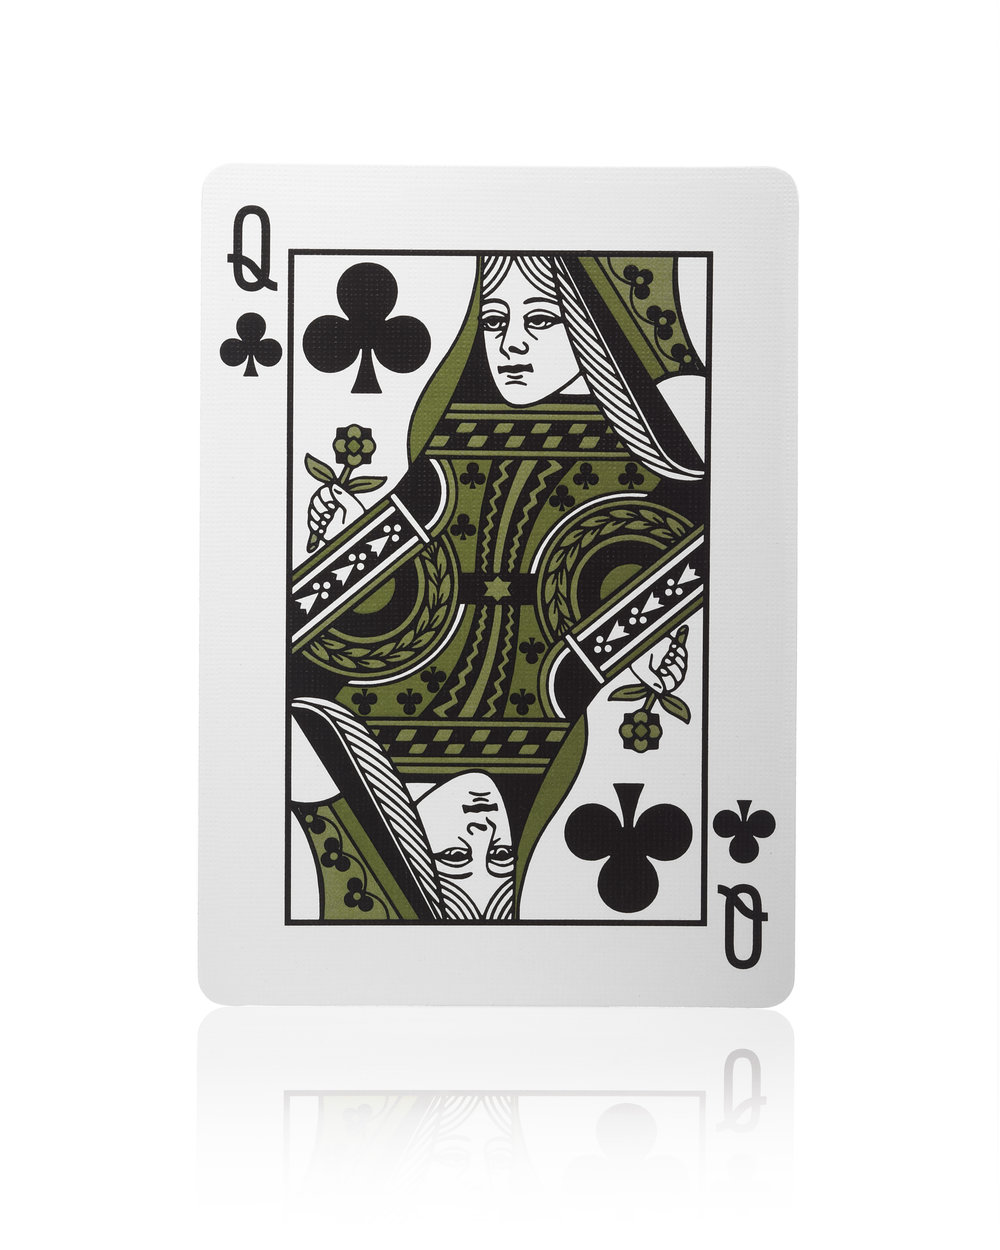 110330-PlayingCards-PlayingCards-010 copy.jpg